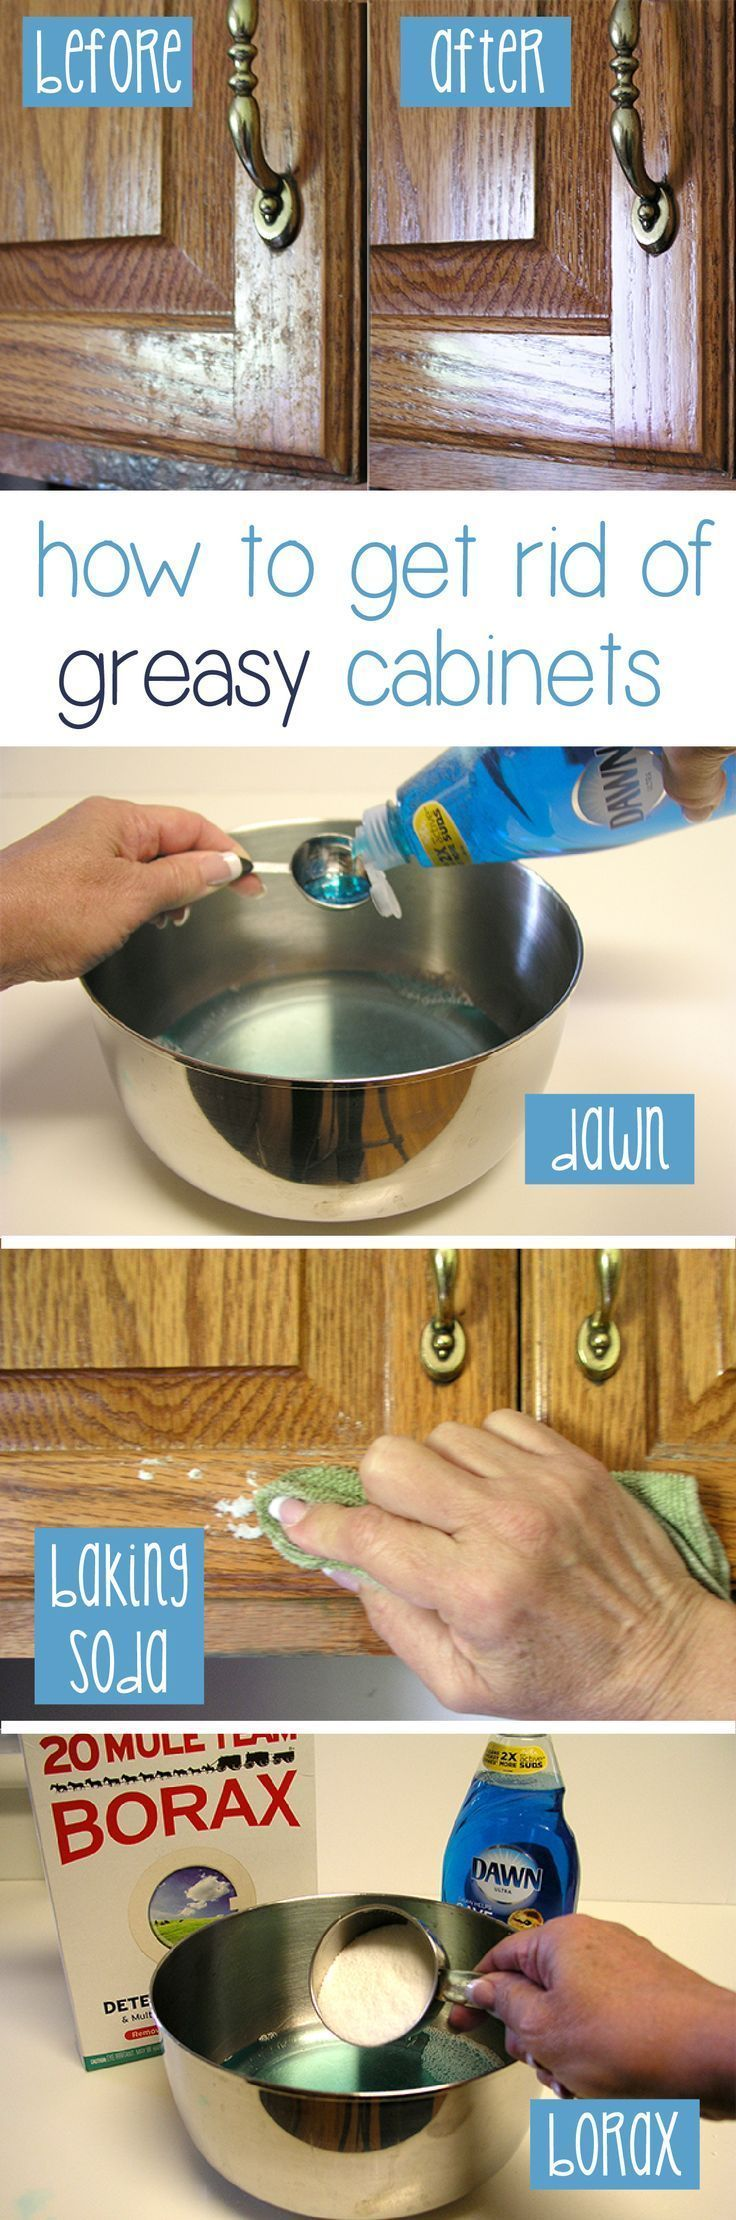 No More Greasy Cabinets Here Are A Few Diffe Solutions That Can Help You Get Your Kitchen Squeaky Clean Www Ehow Com